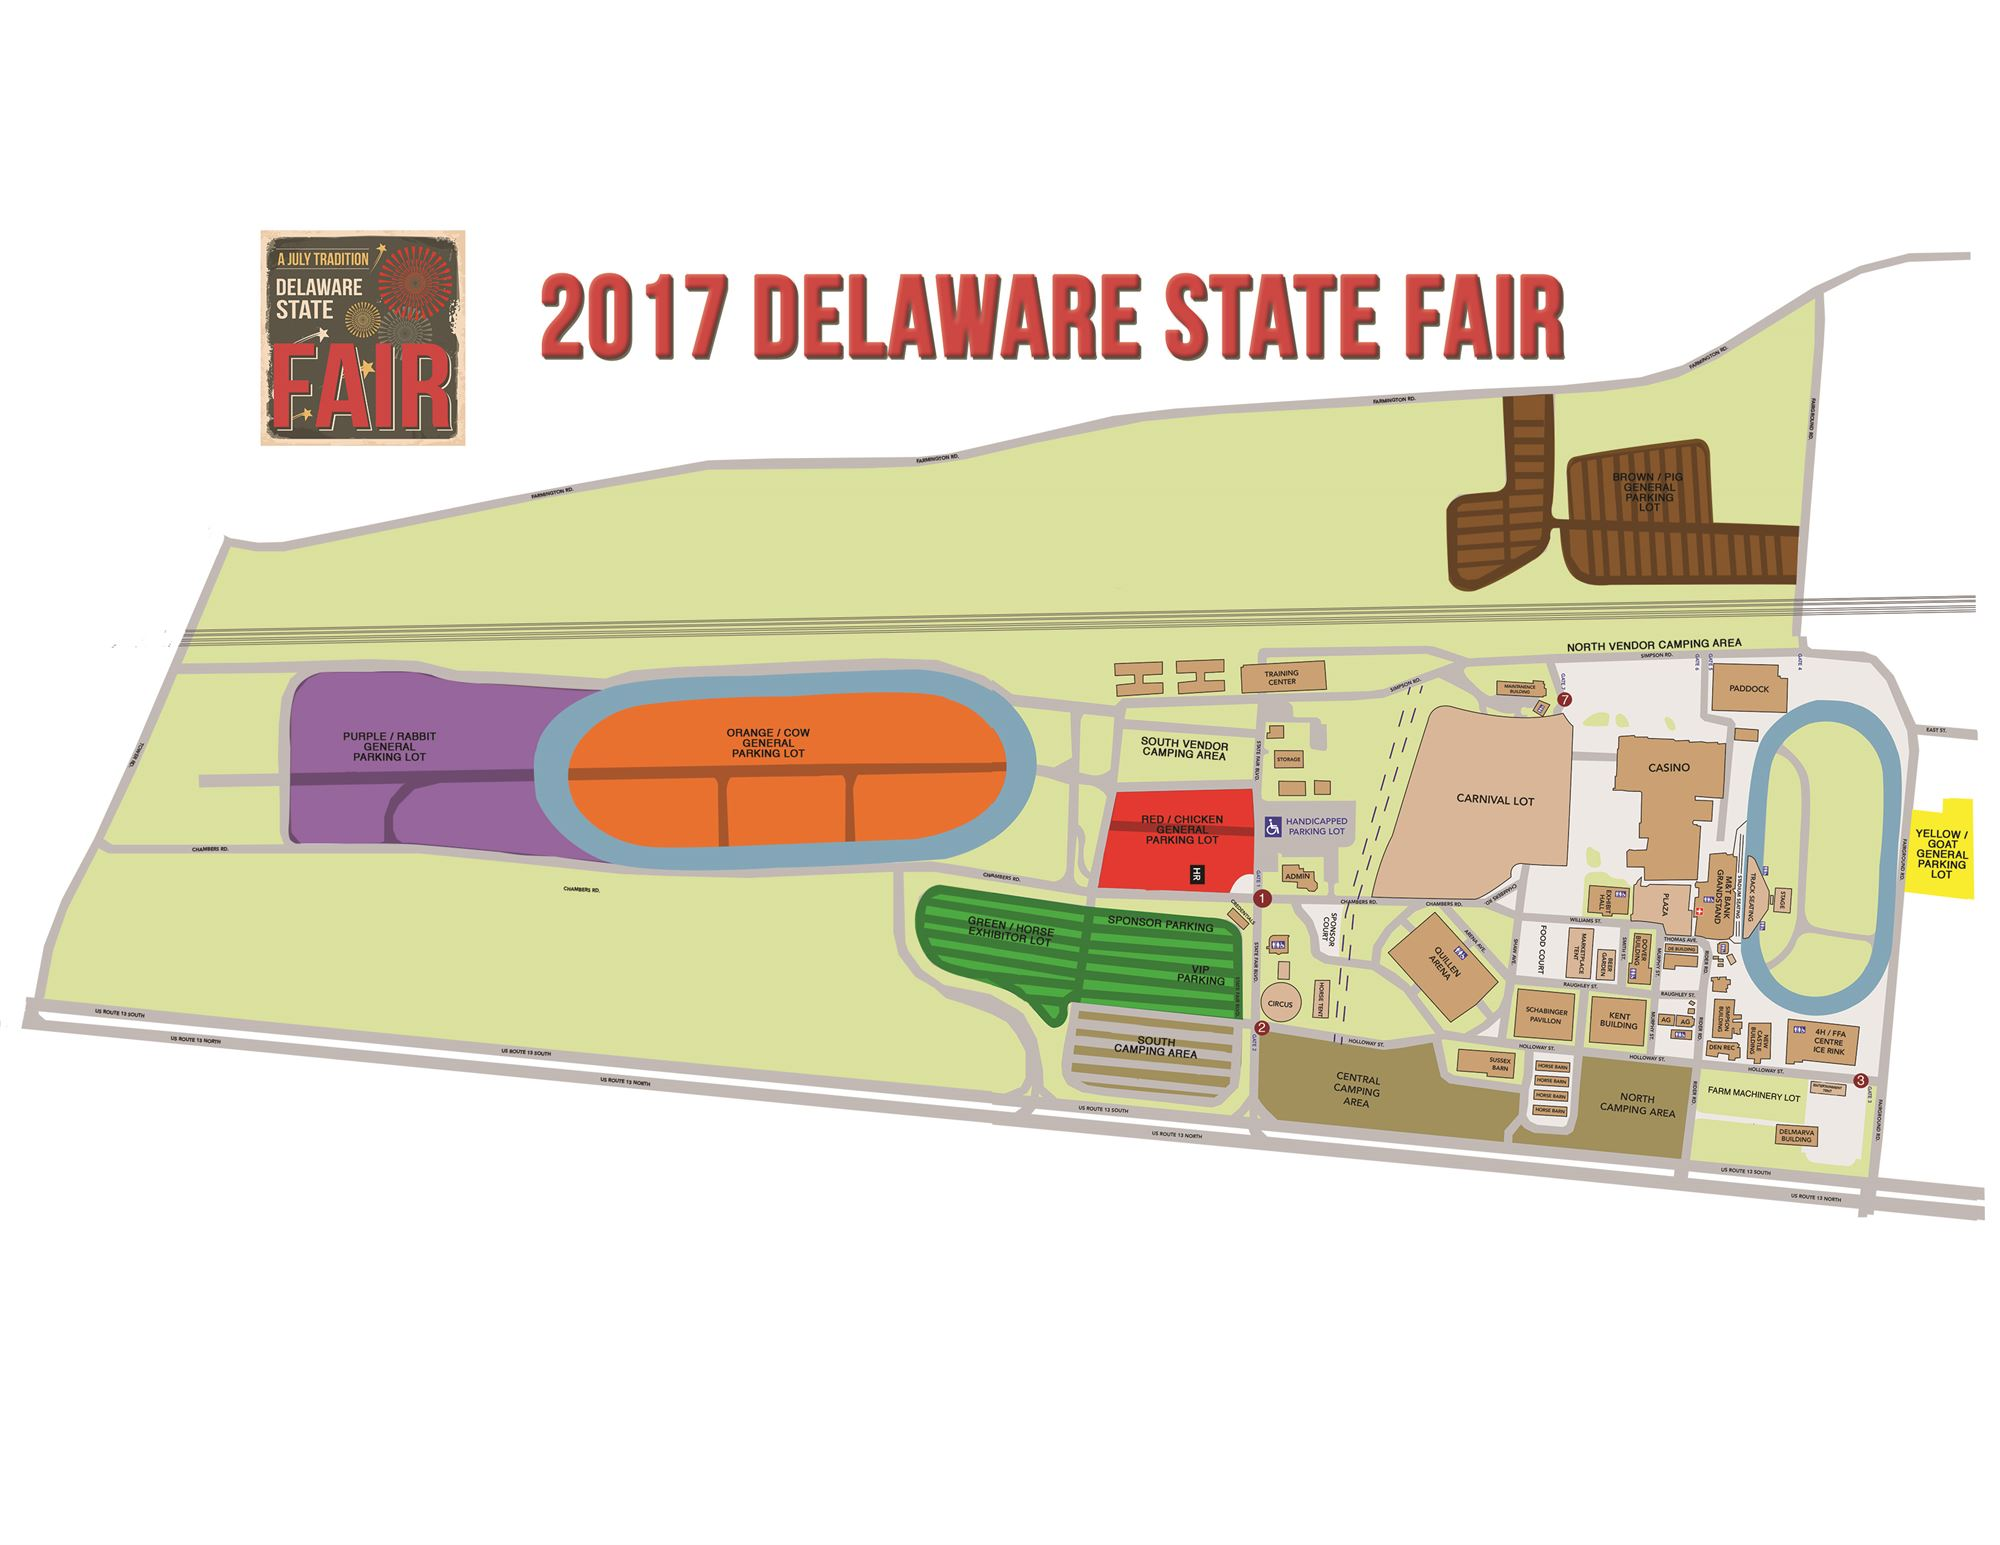 Event Map - Delaware state map